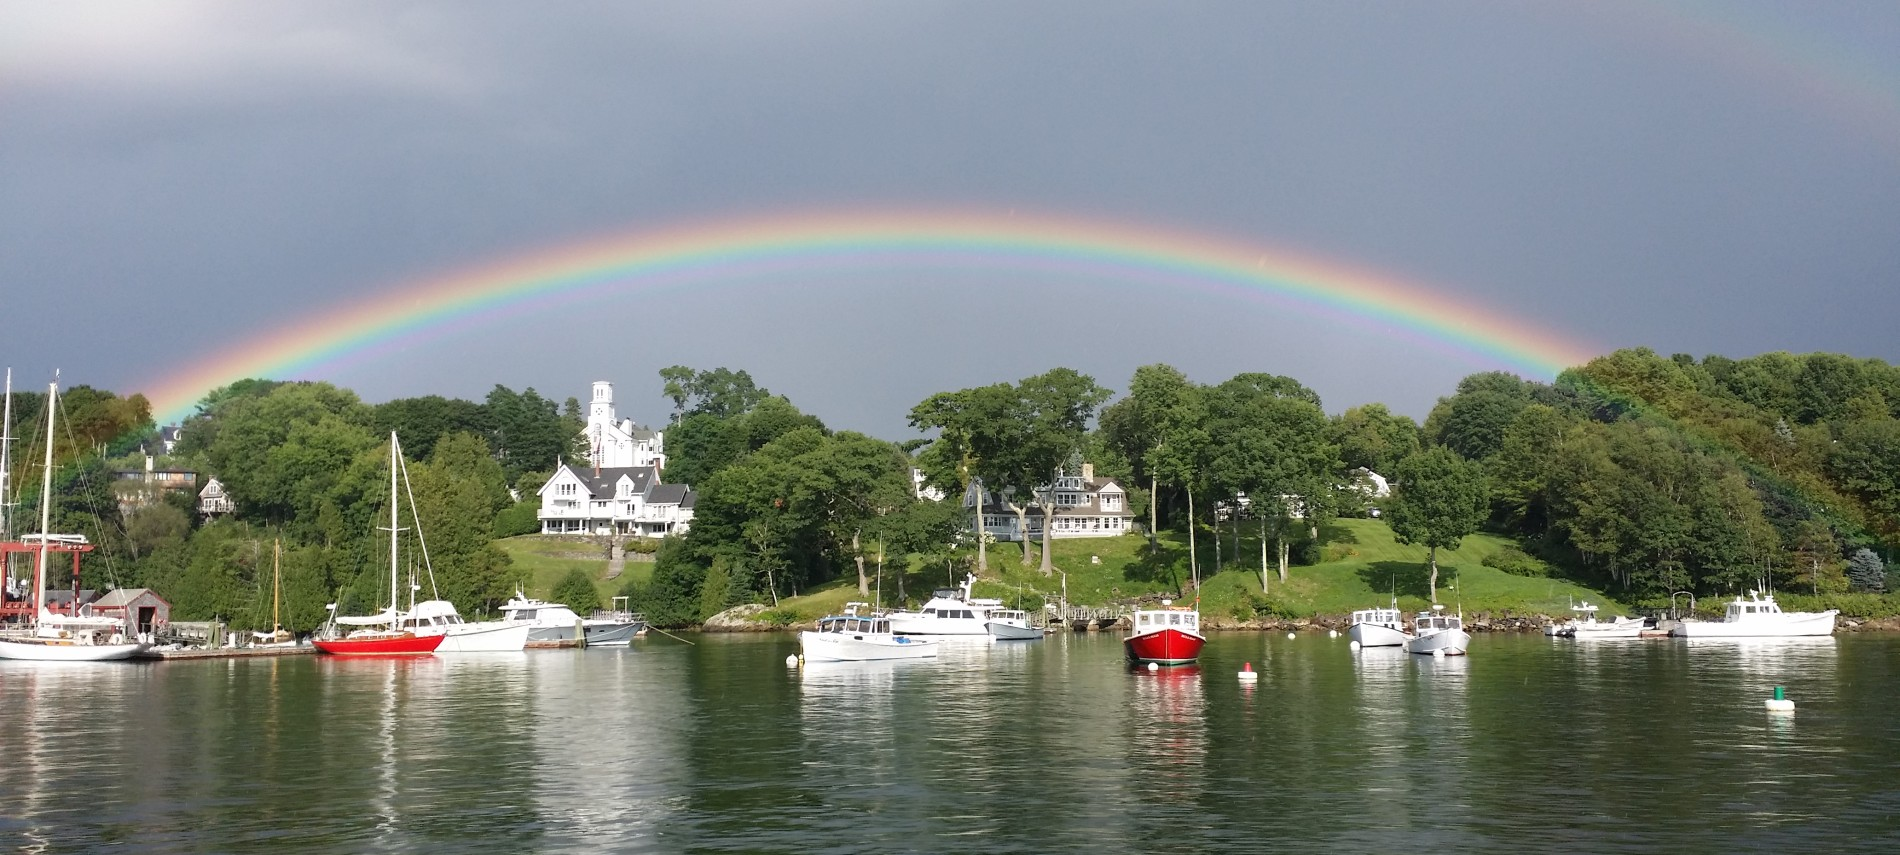 A rainbow forms over Rockport, Maine